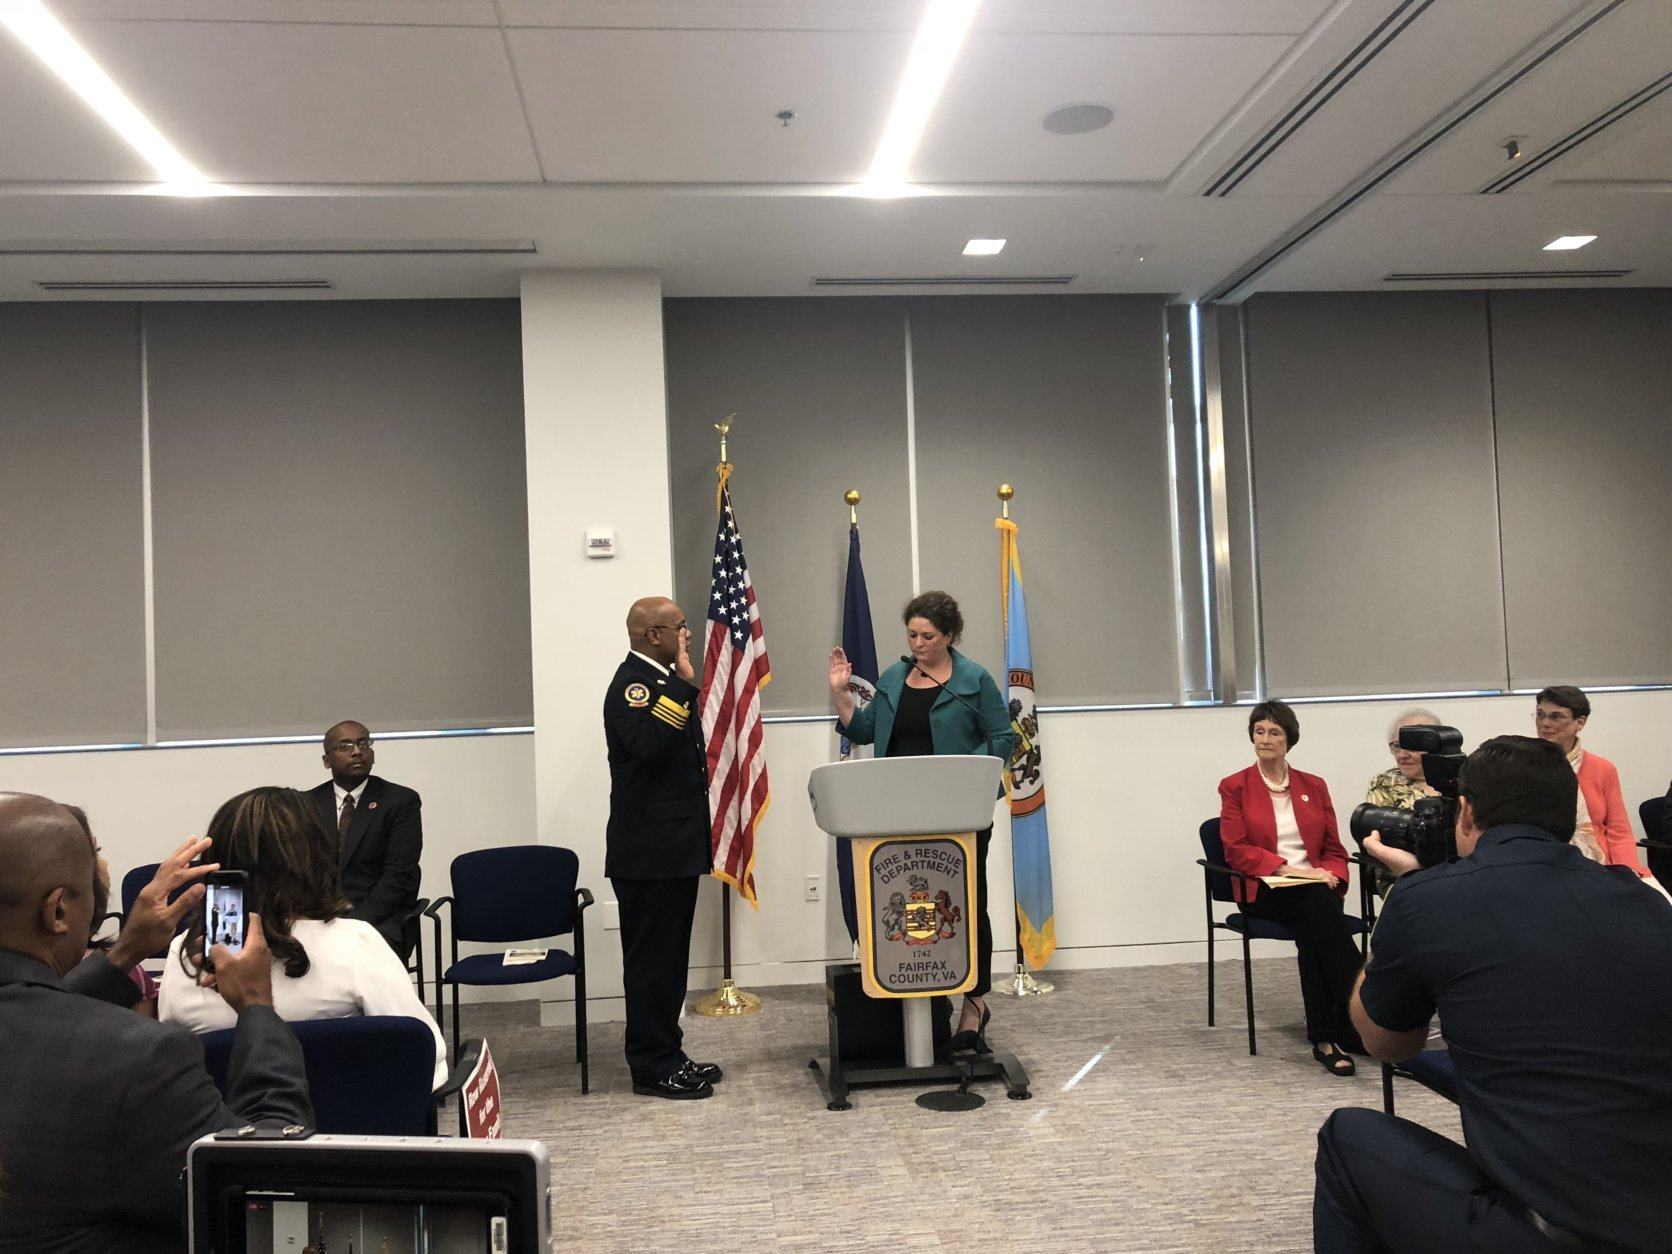 Fairfax County Fire Chief John Butlers swearing in WTOP/Max Smith)